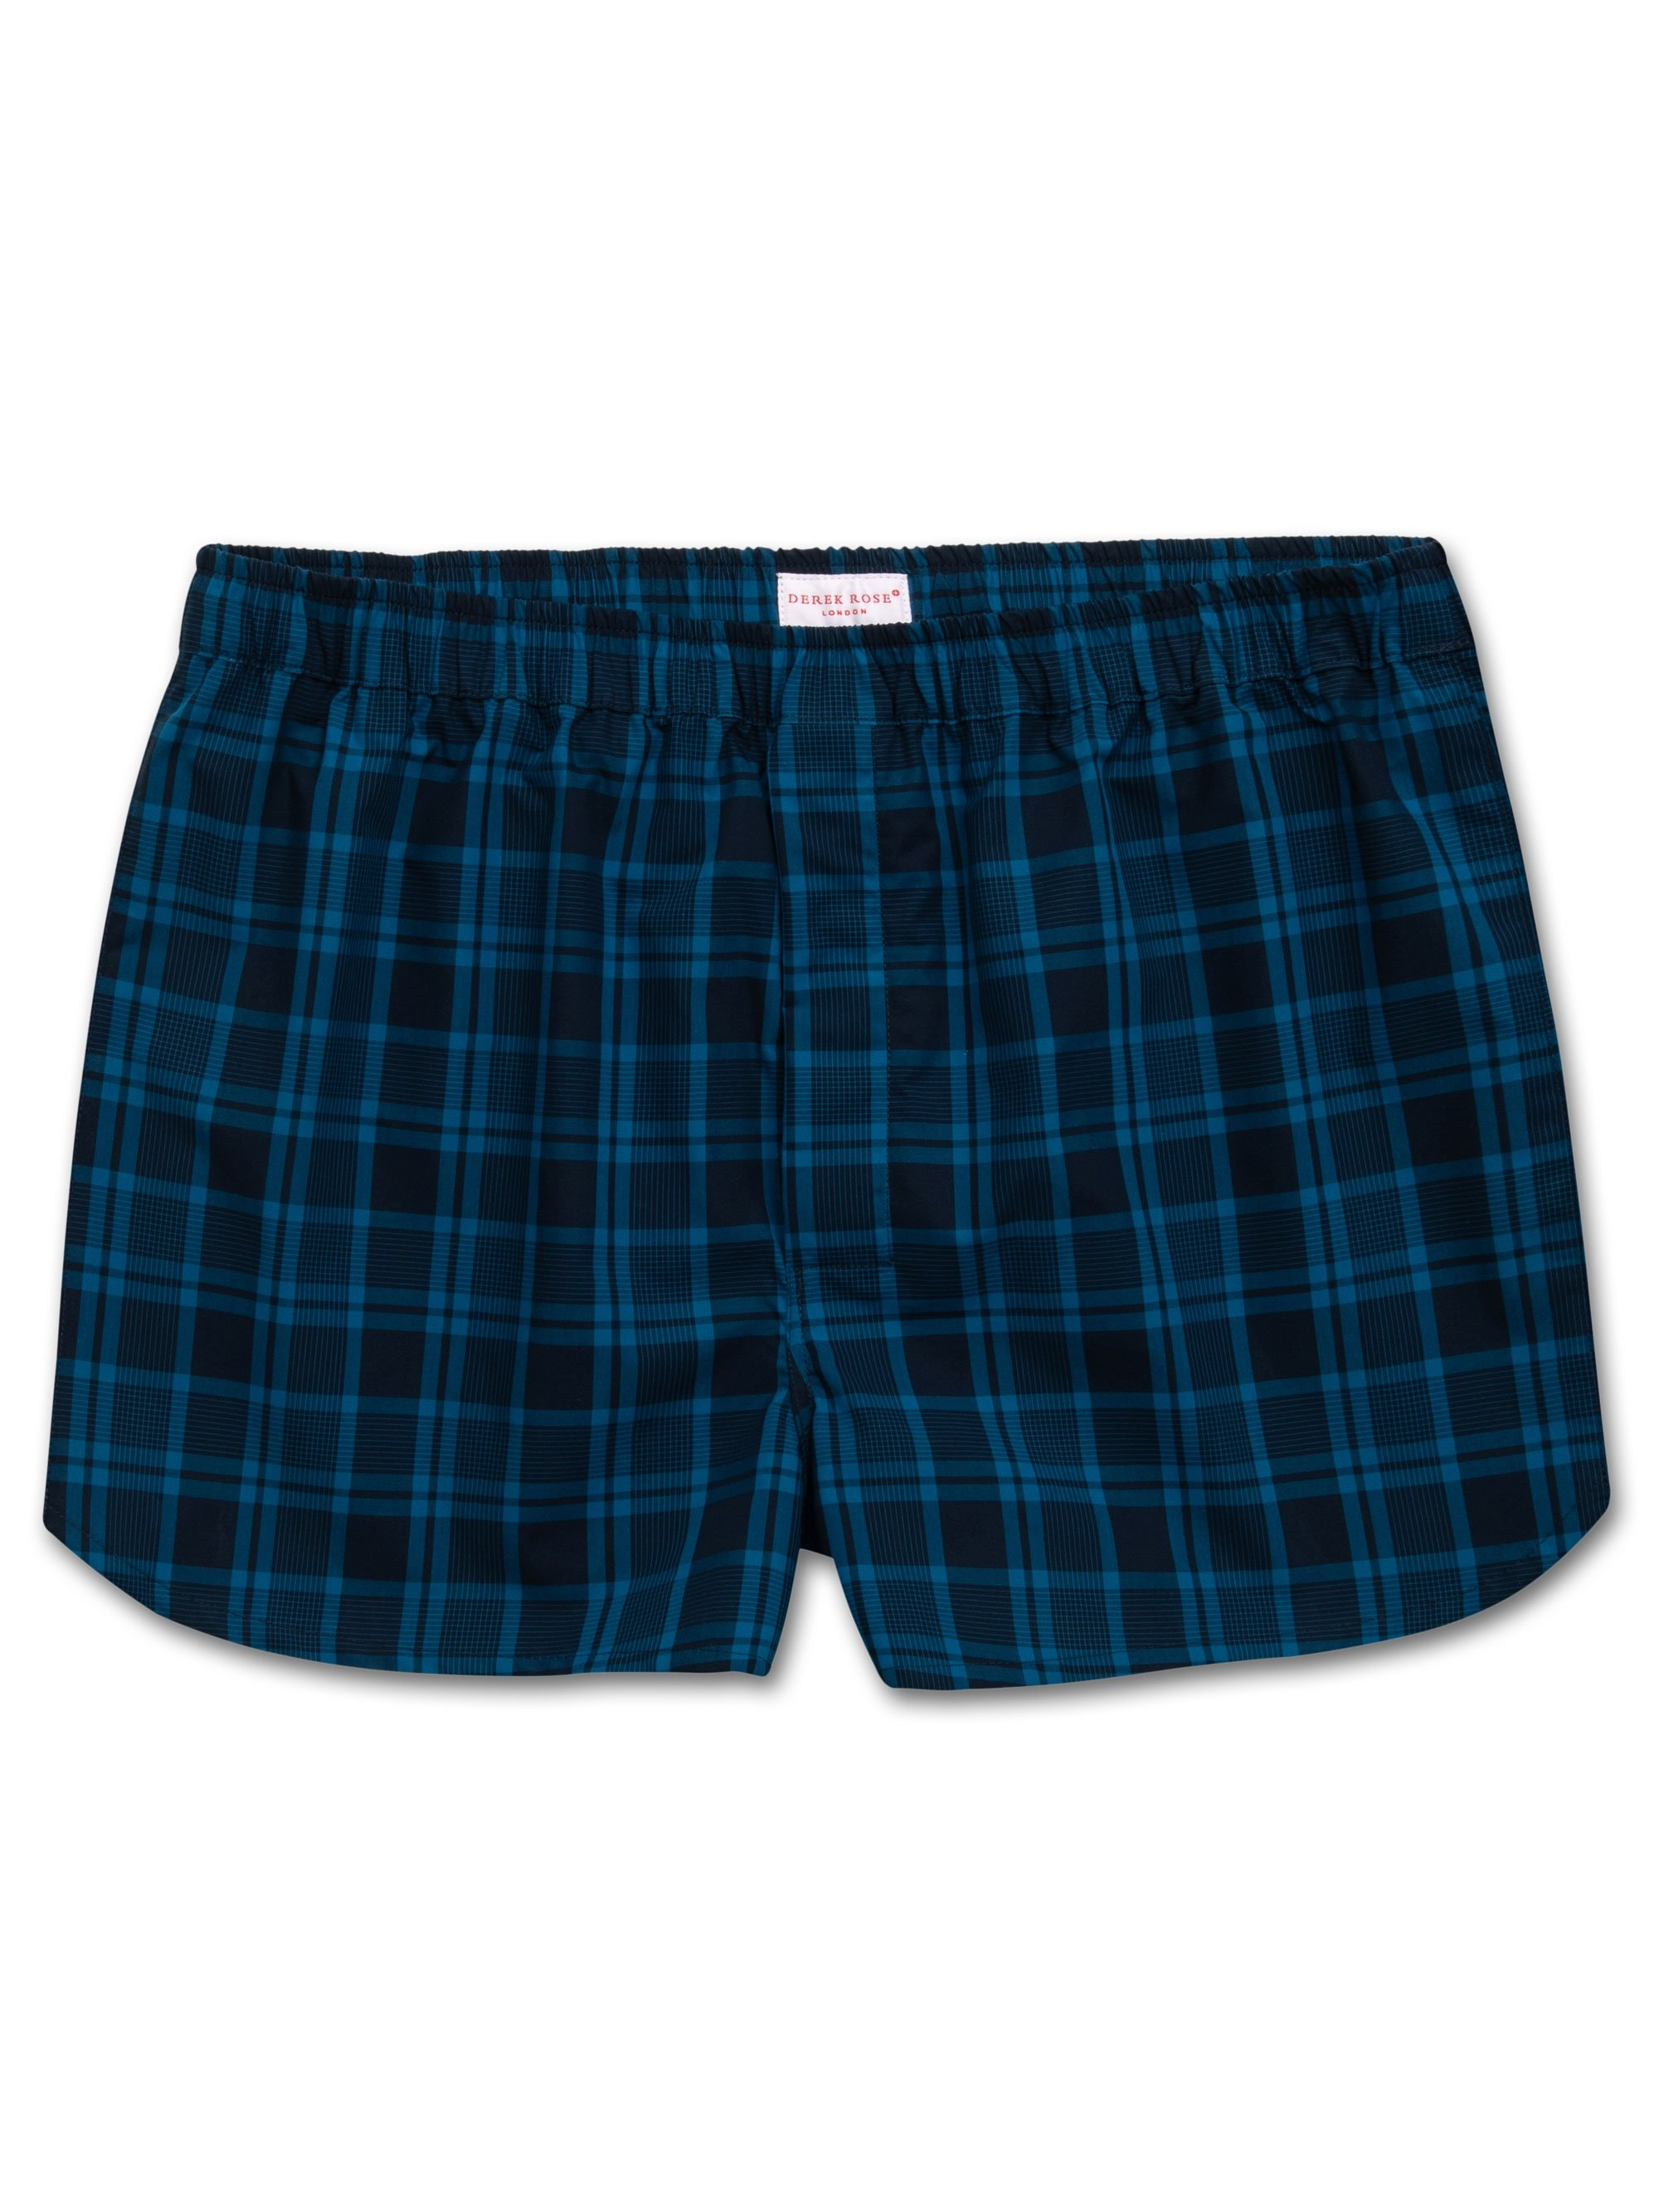 Men's Modern Fit Boxer Shorts Barker 24 Cotton Check Navy